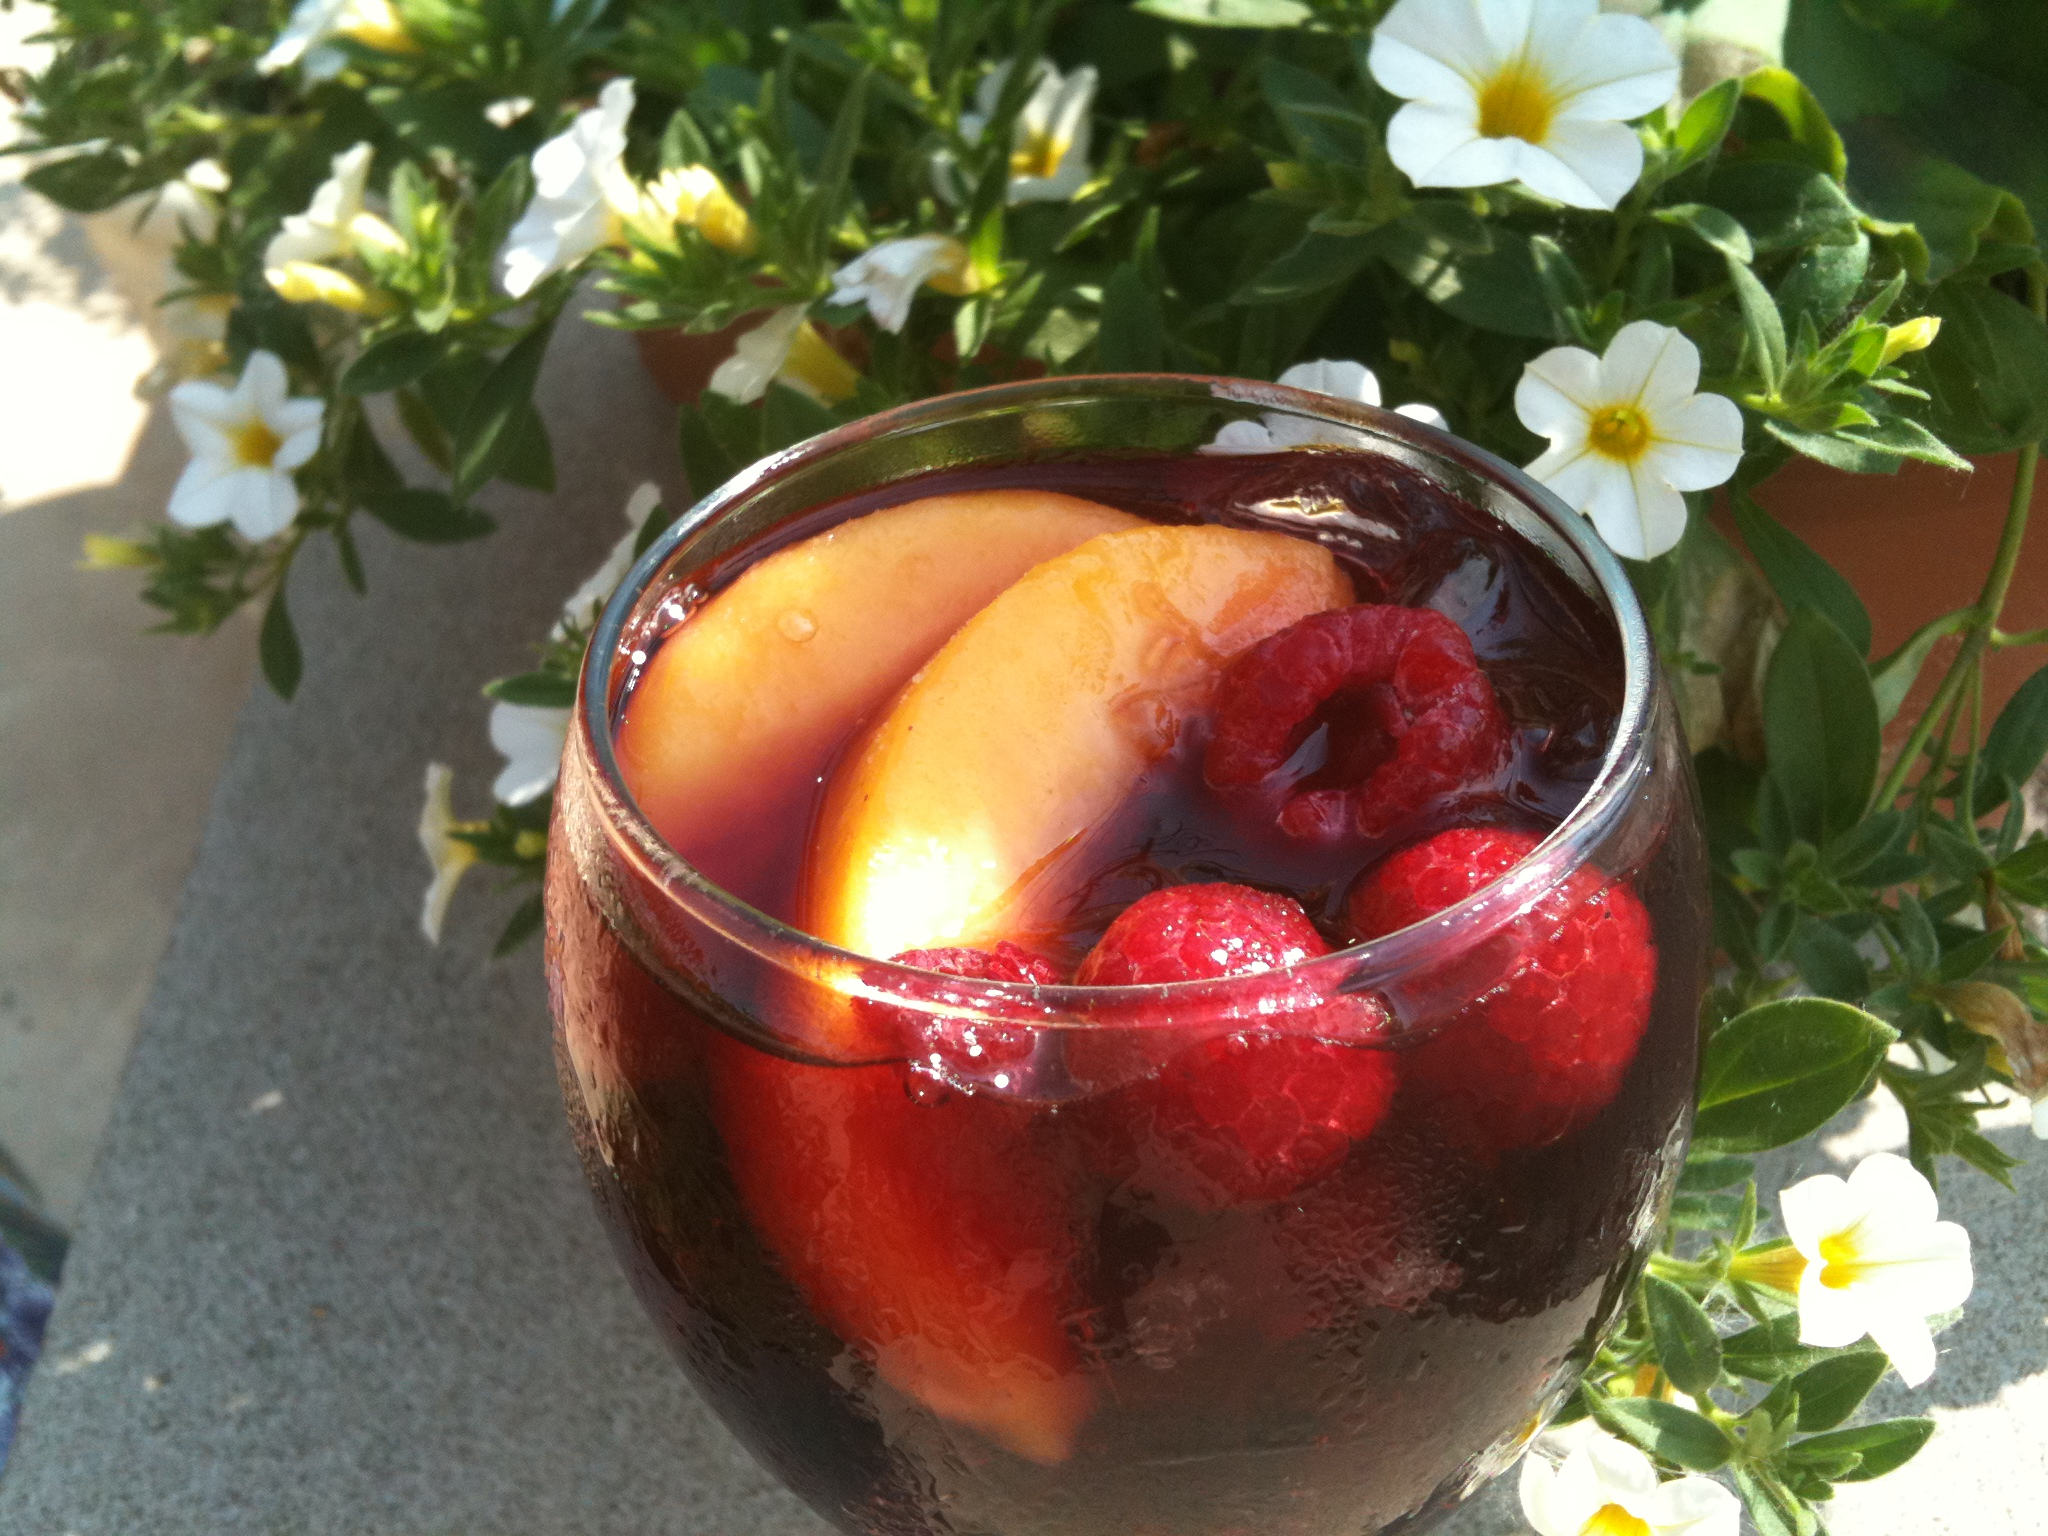 Sangria in a glass with peach slices and raspberries